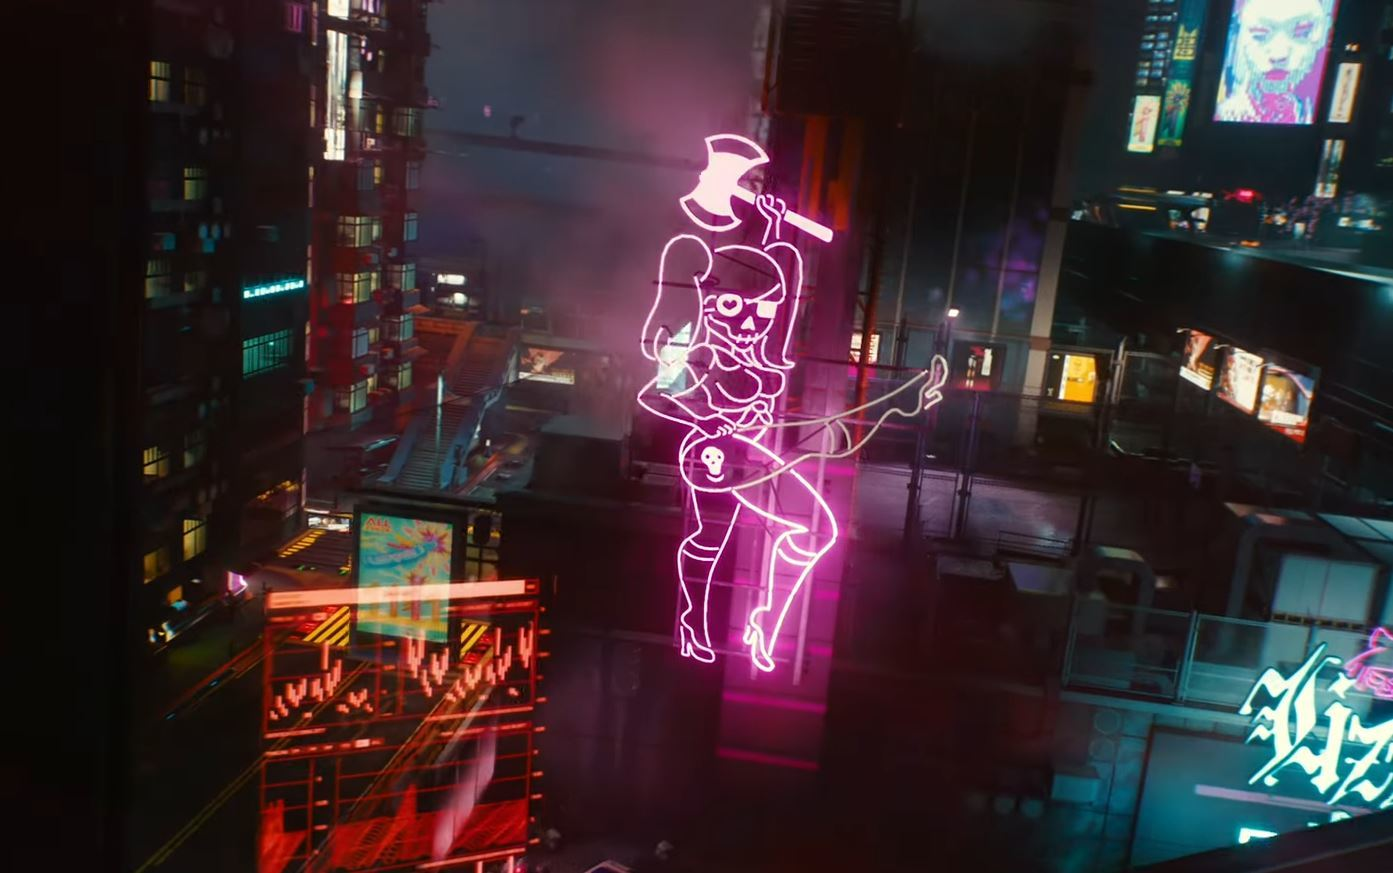 A giant neon sign lights up Night City in Cyberpunk 2077, from the Nvidia press conference in Sept. 2020.